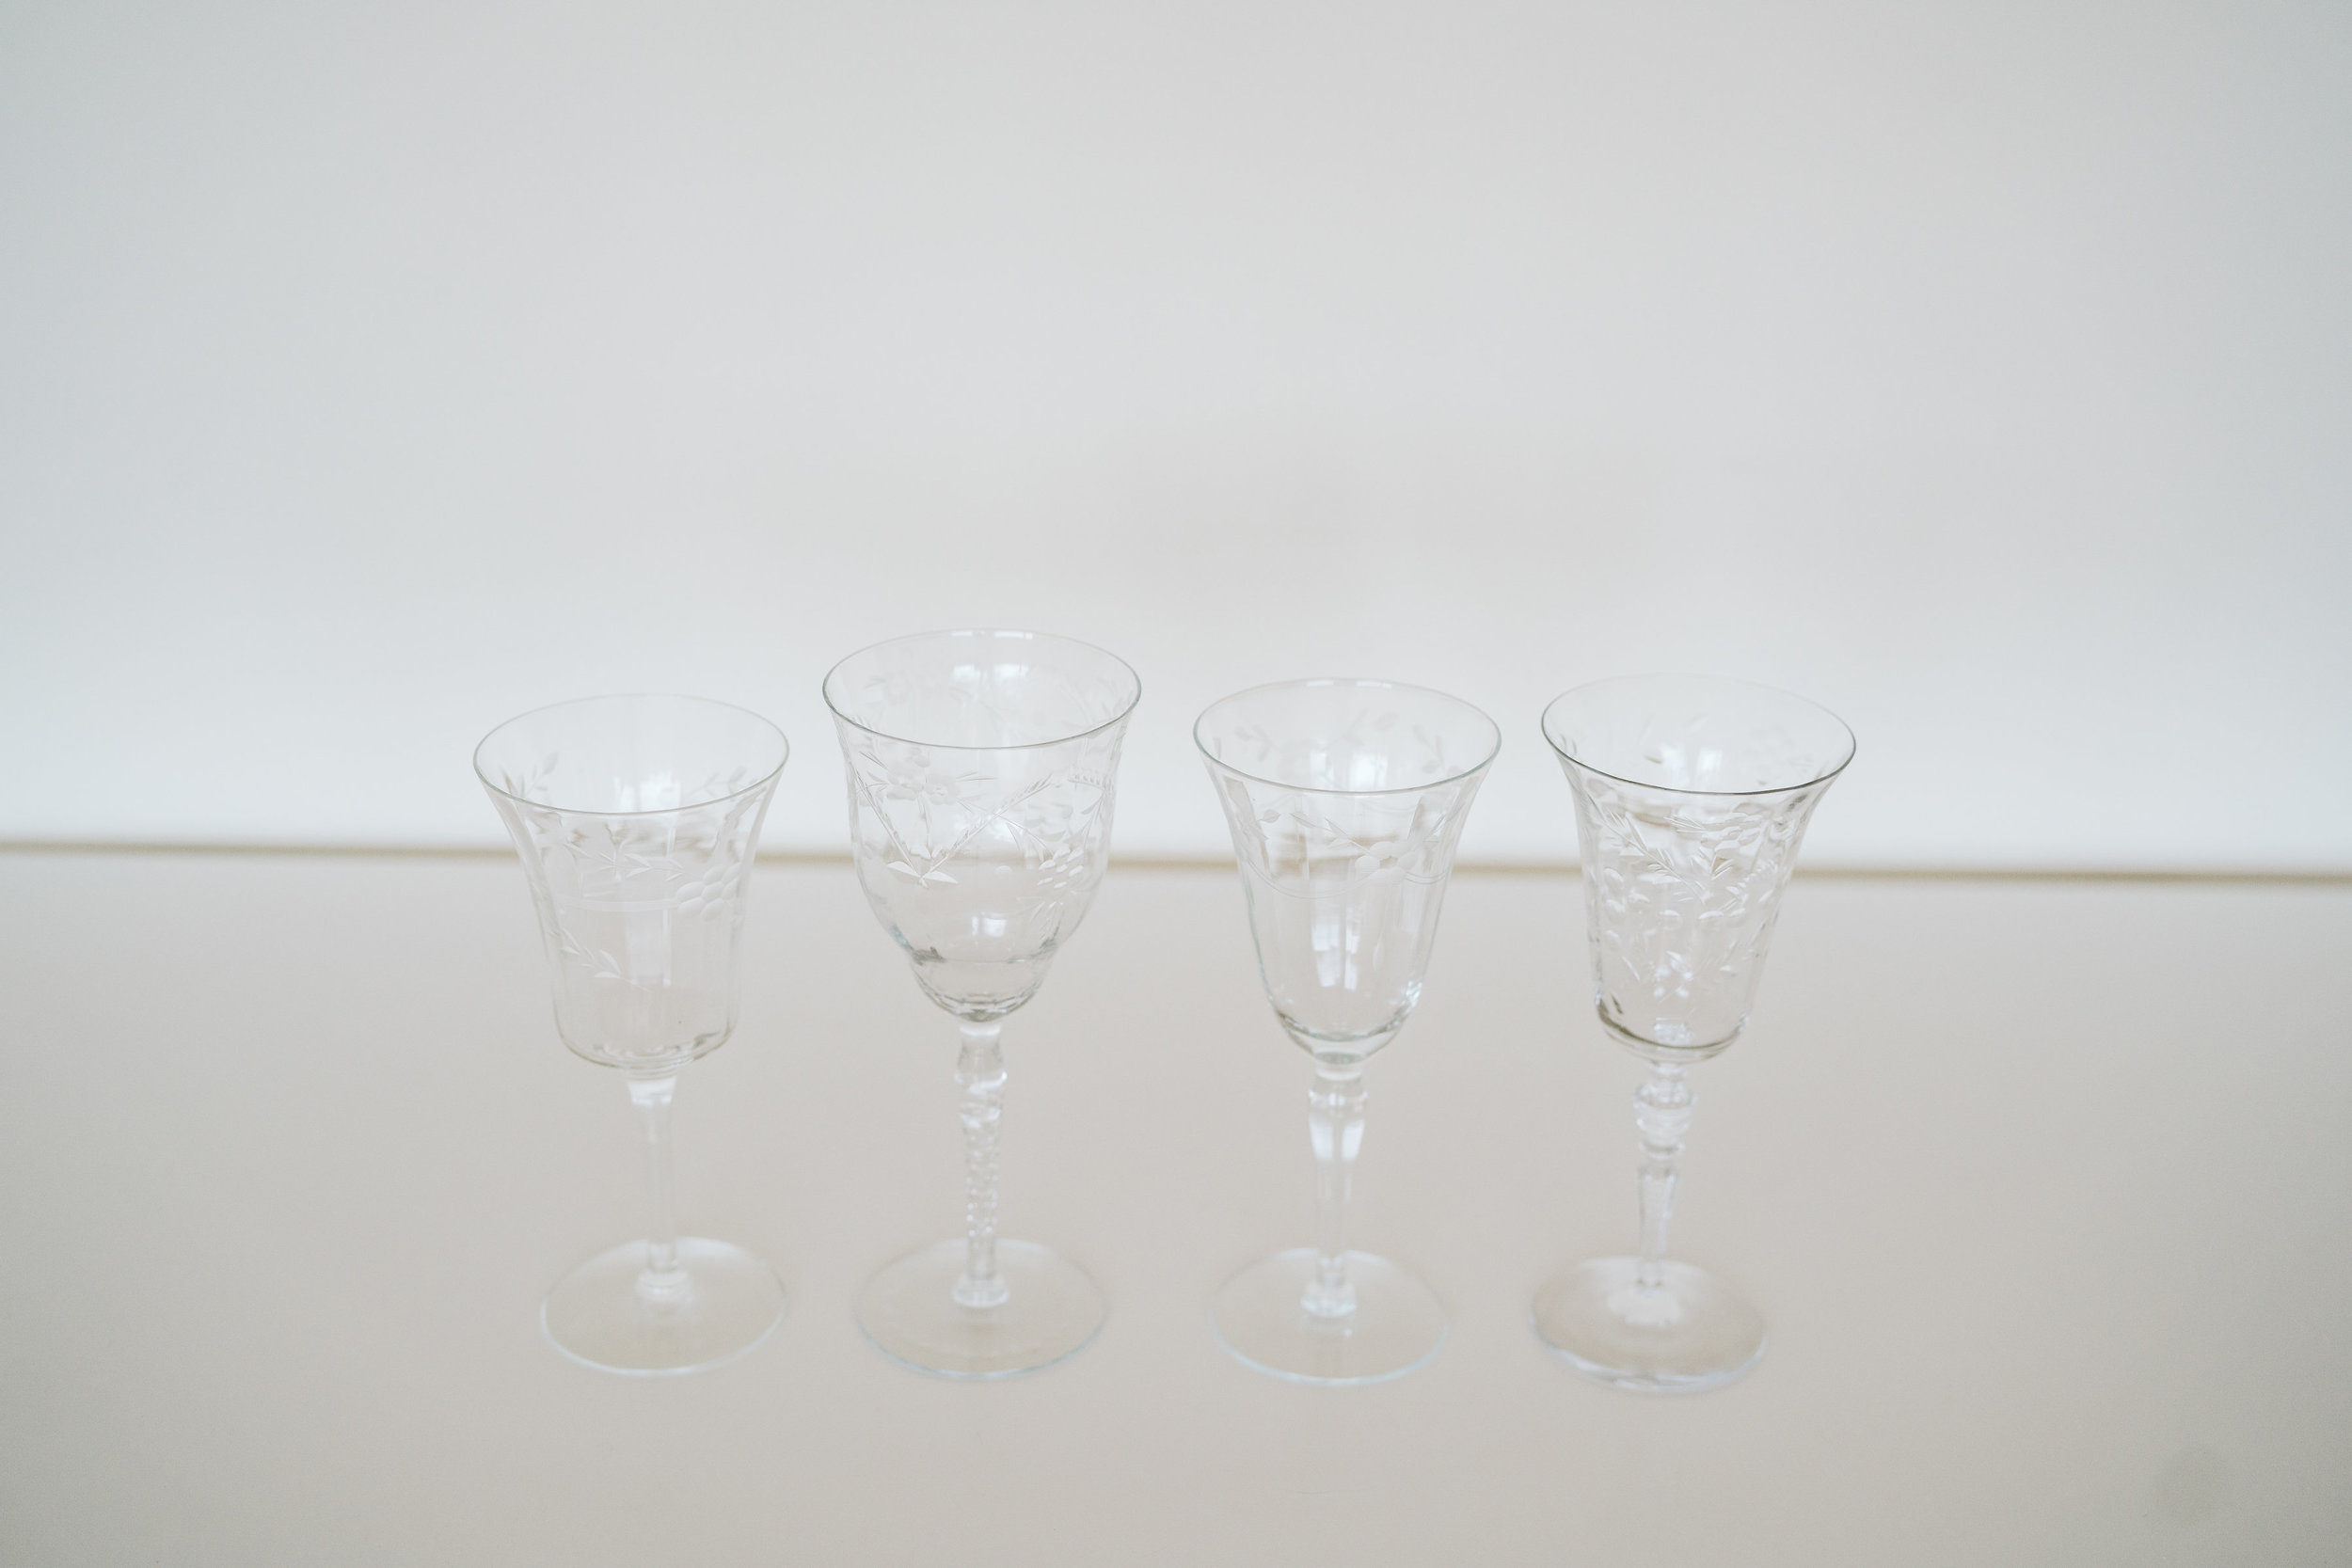 ETCHED CRYSTAL WINE GLASSES